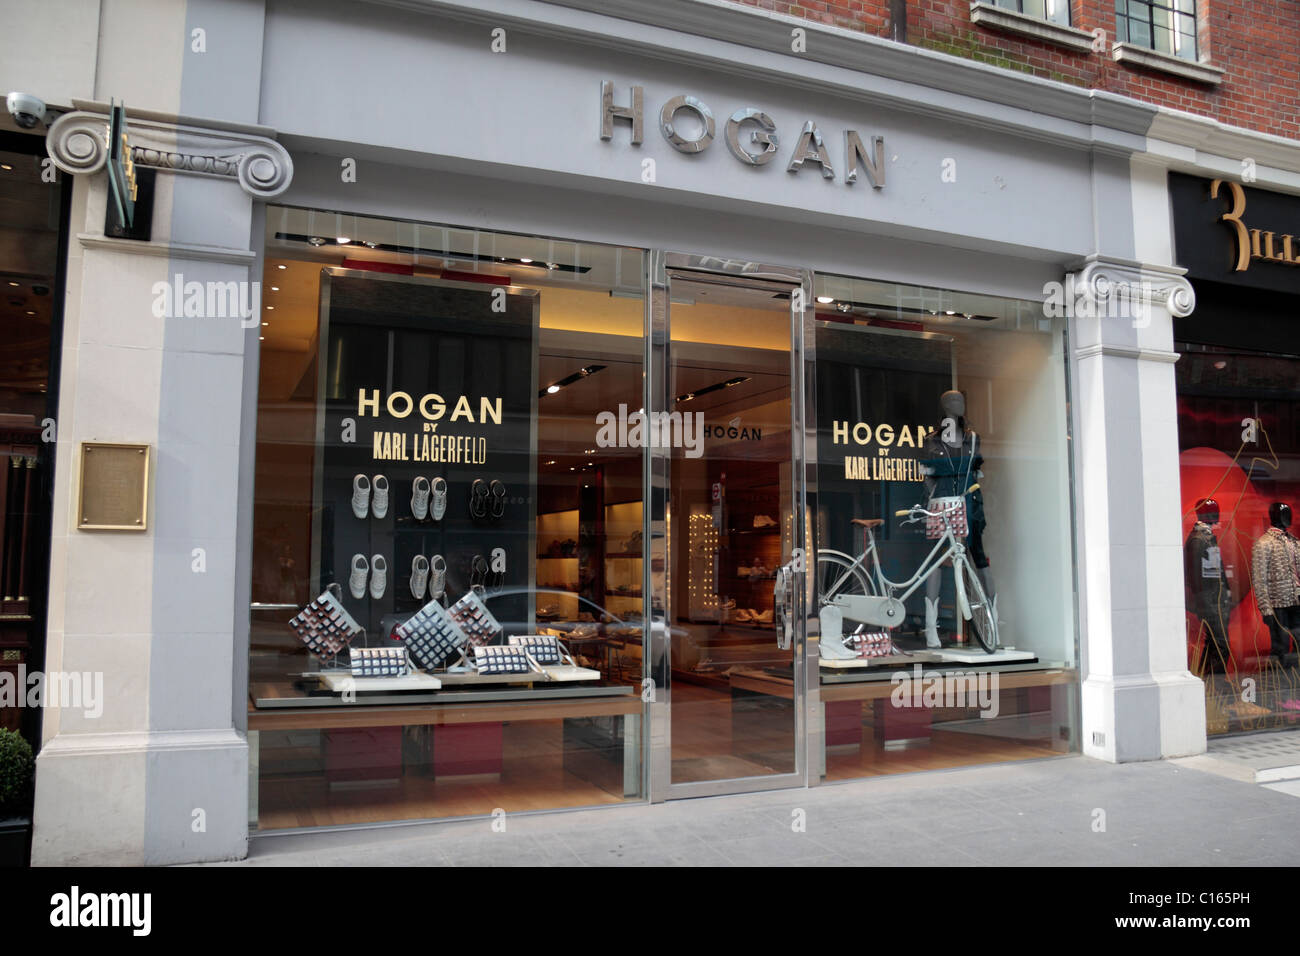 hogan shop